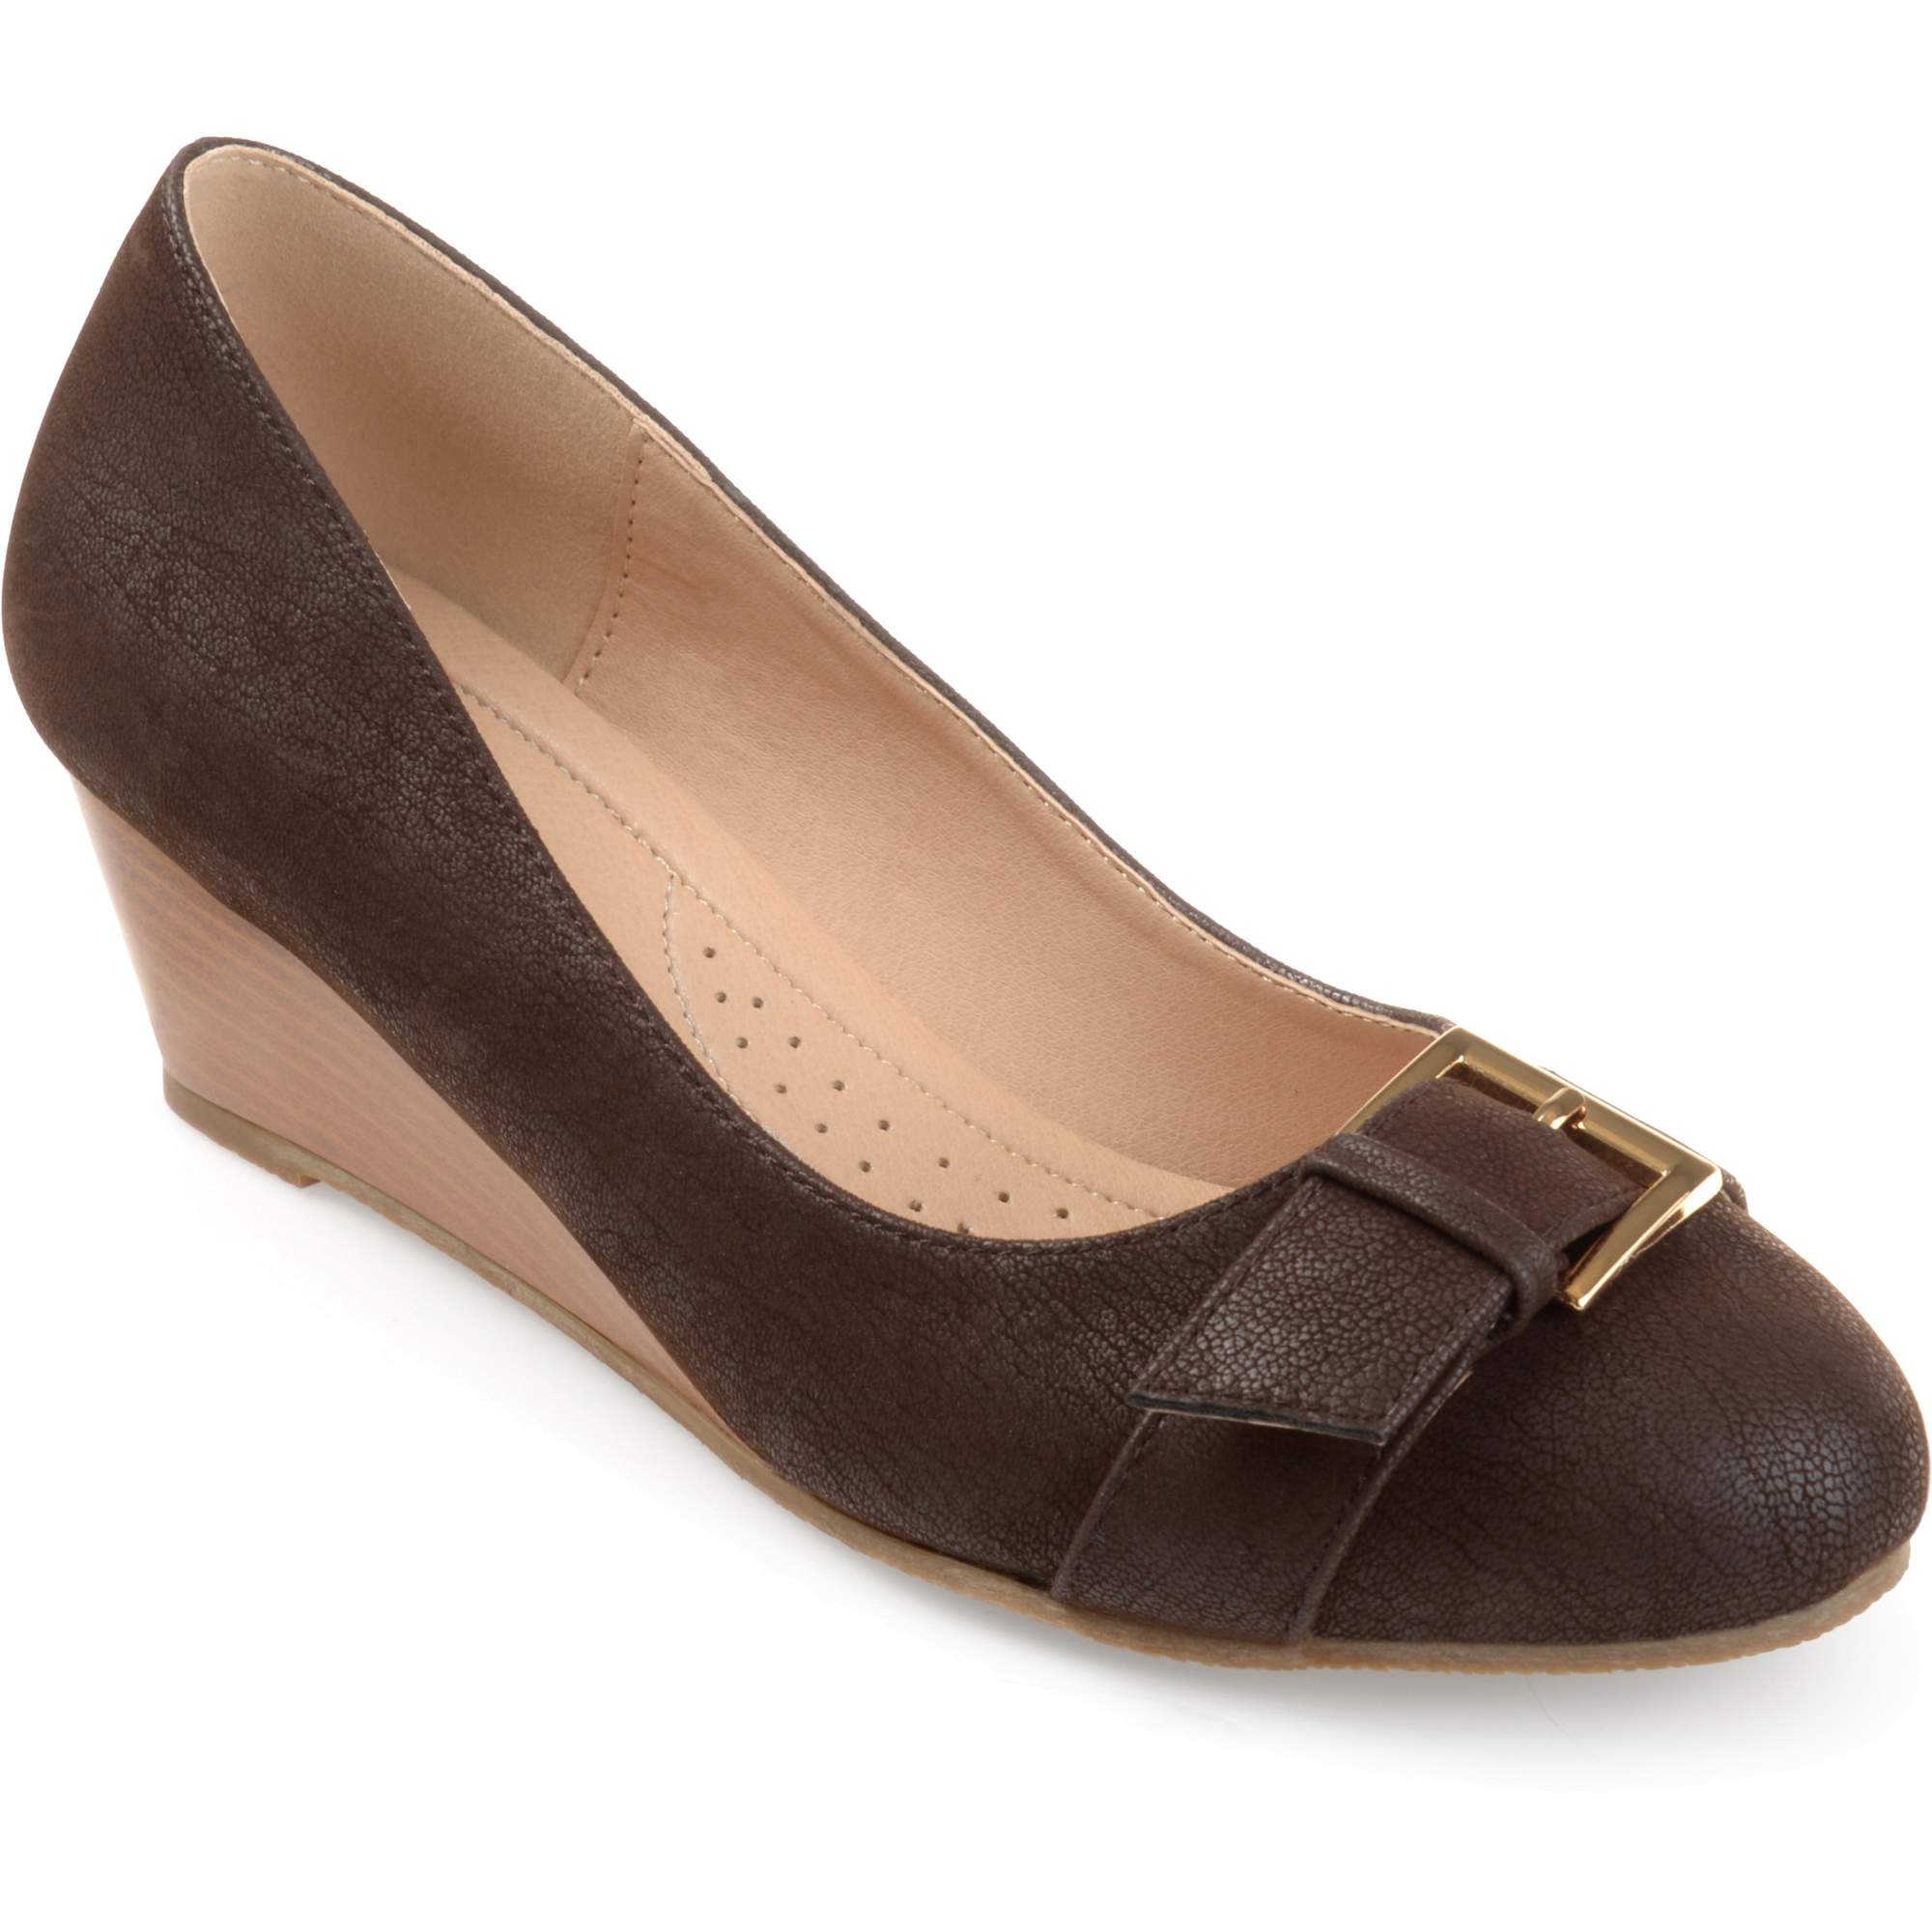 Brinley Co. Women's Faux Suede Buckle Detail Comfort-sole Wedges